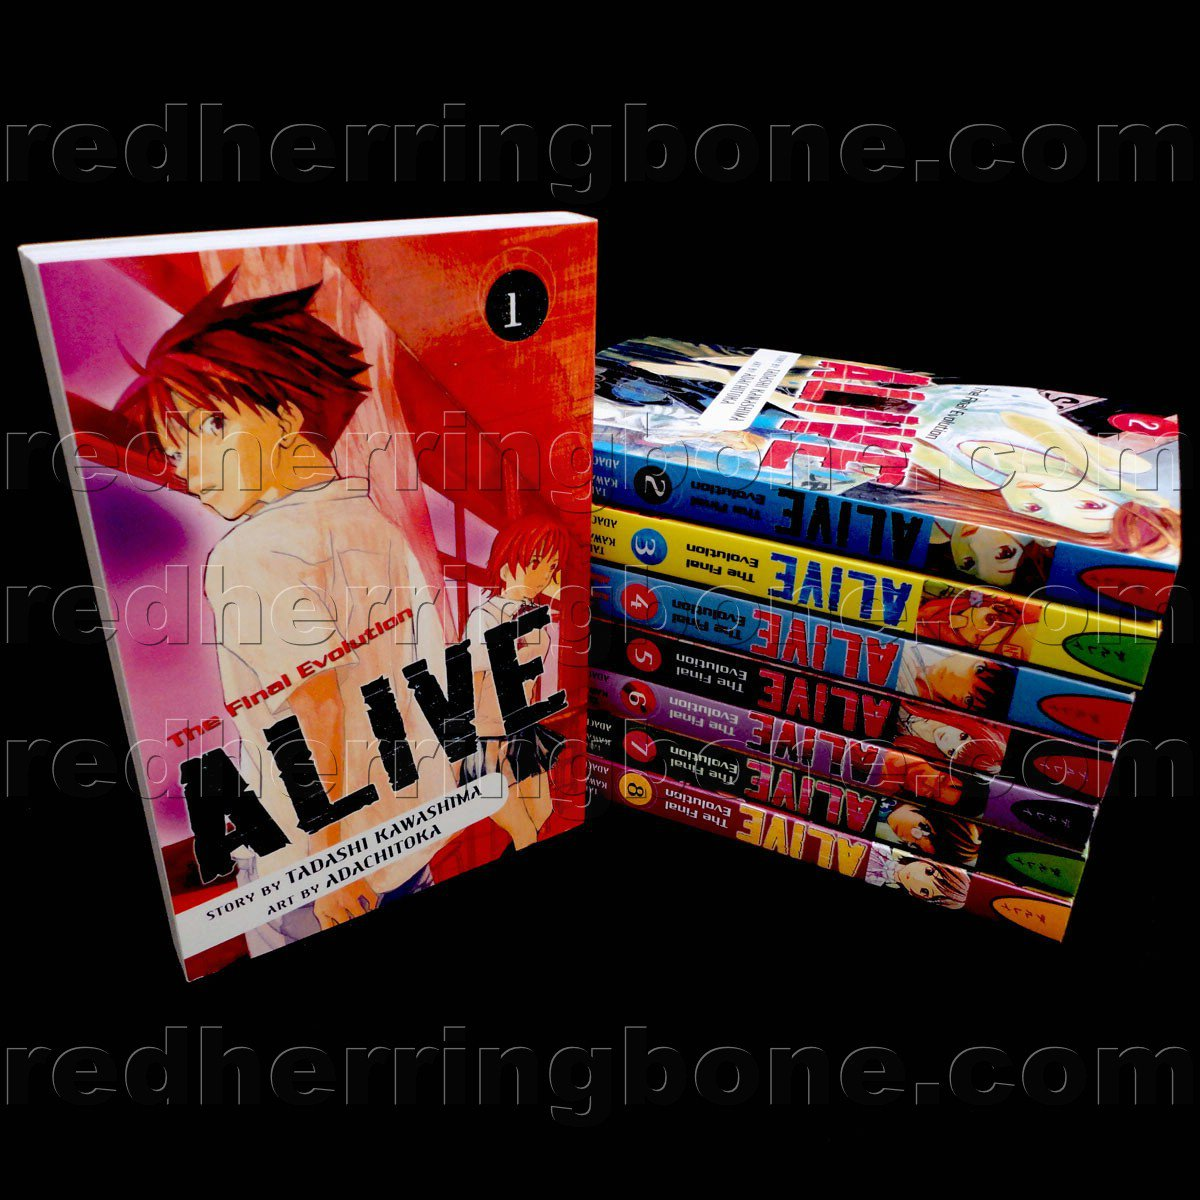 Alive: The Final Evolution, Vol. 1-8 (set includes 8 volumes) Tadashi Kawashima & Adachitoka NEW